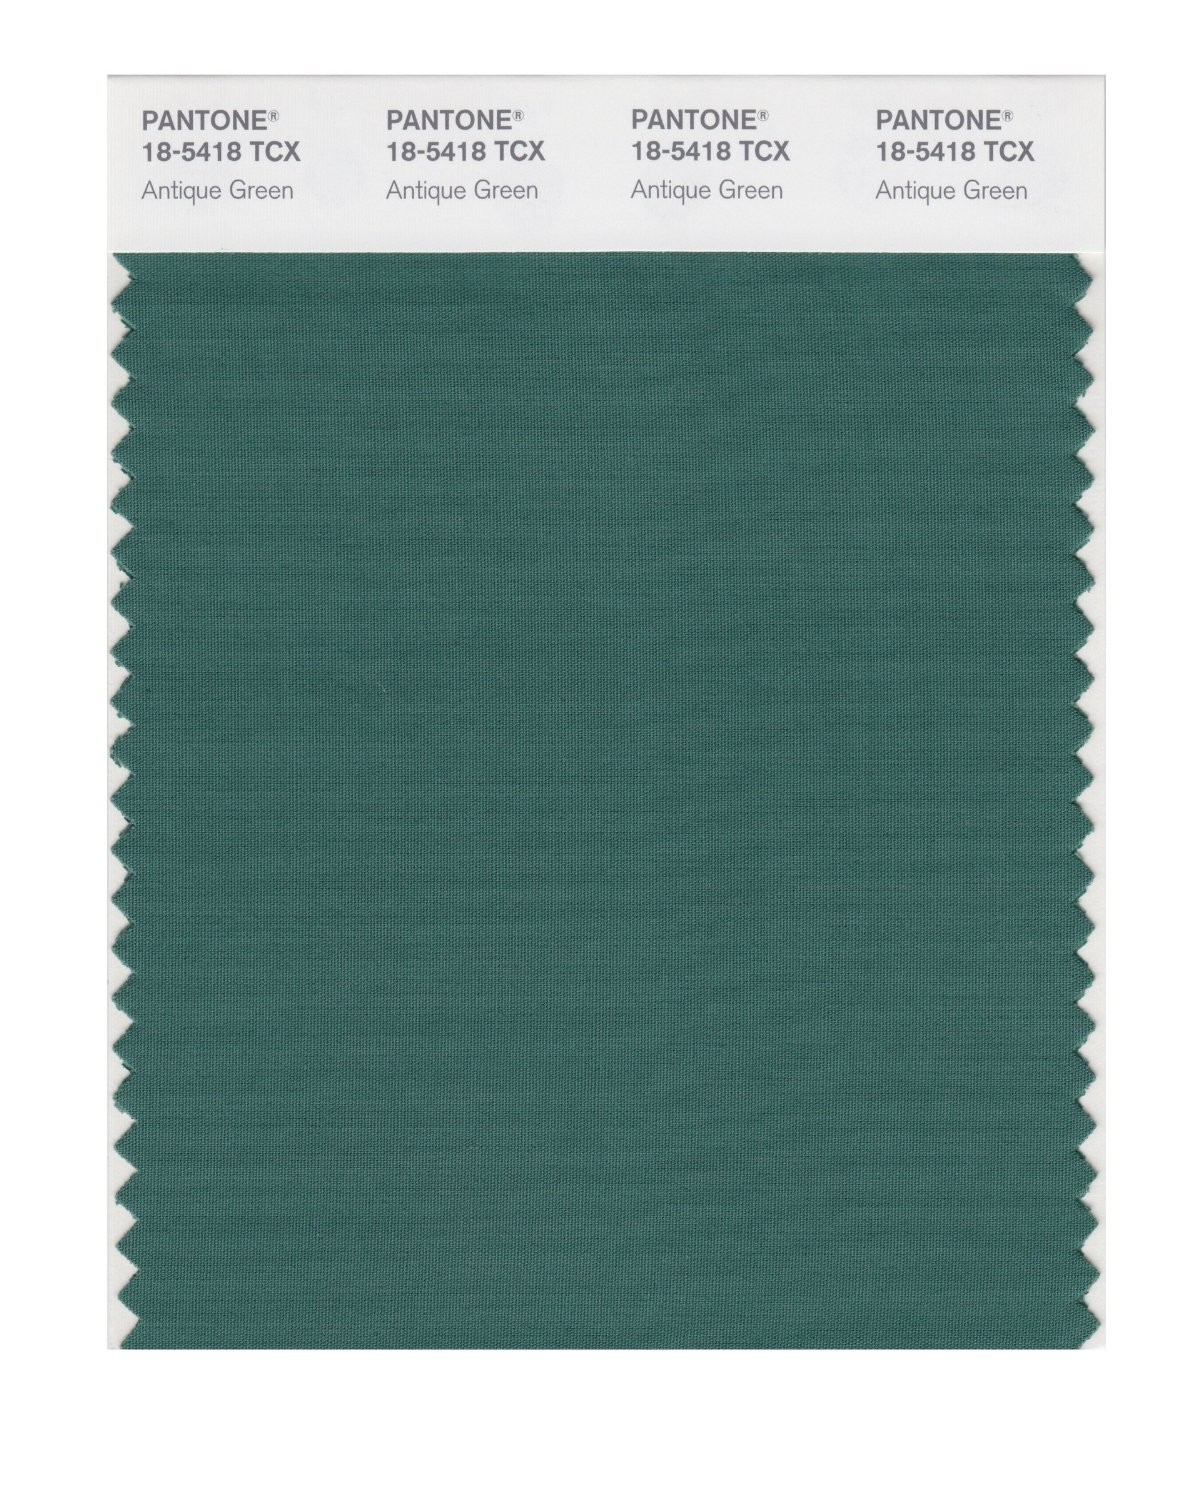 Pantone 18-5418 TCX Swatch Card Antique Green